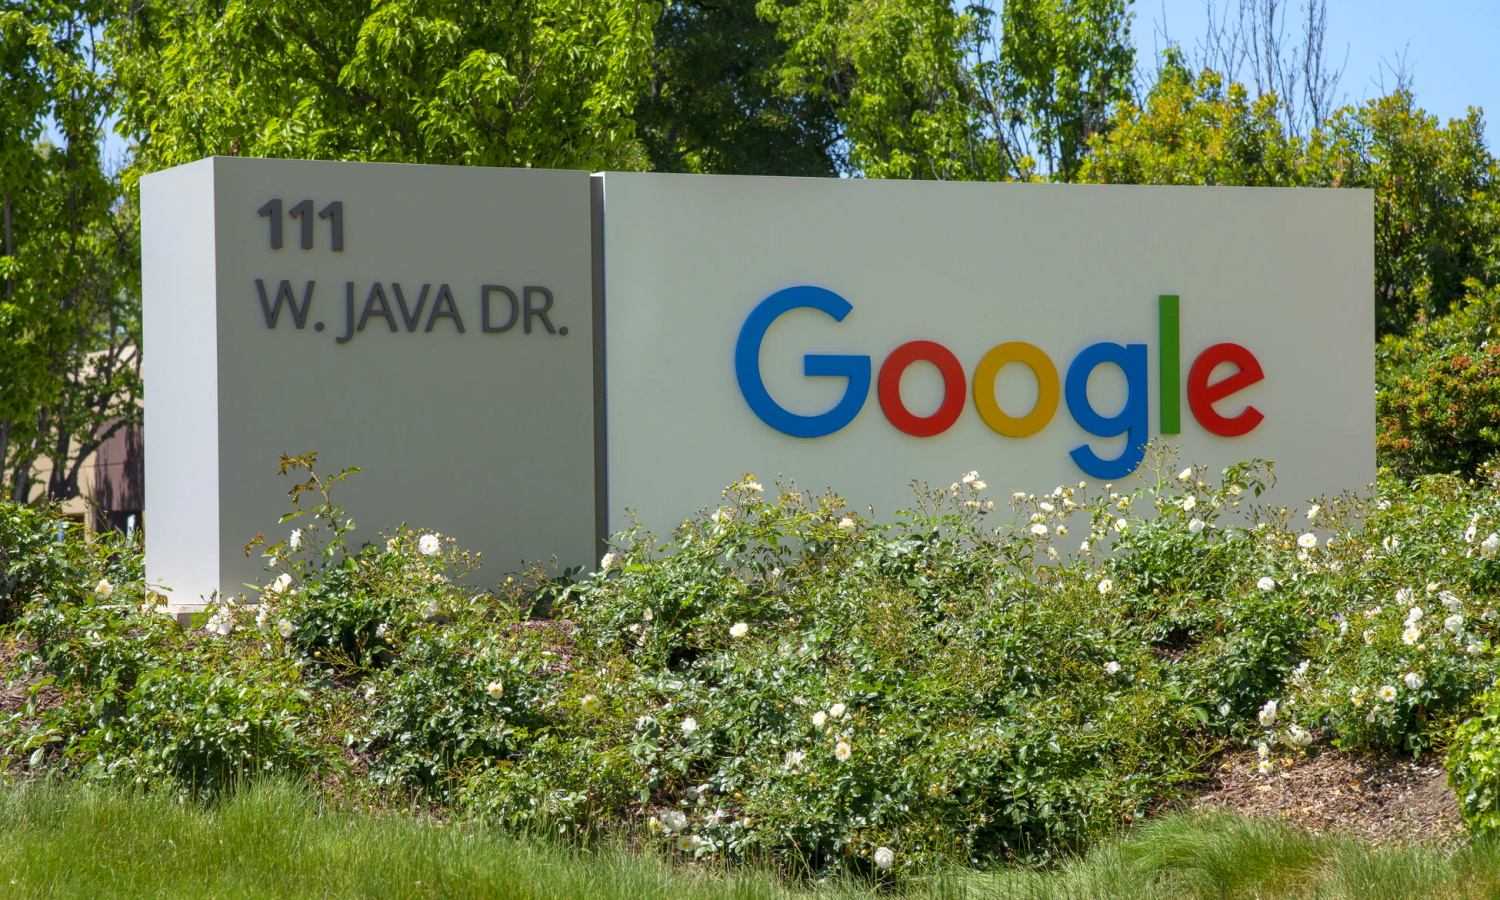 Google to enable 2FA for all users, add privacy labels to Android apps